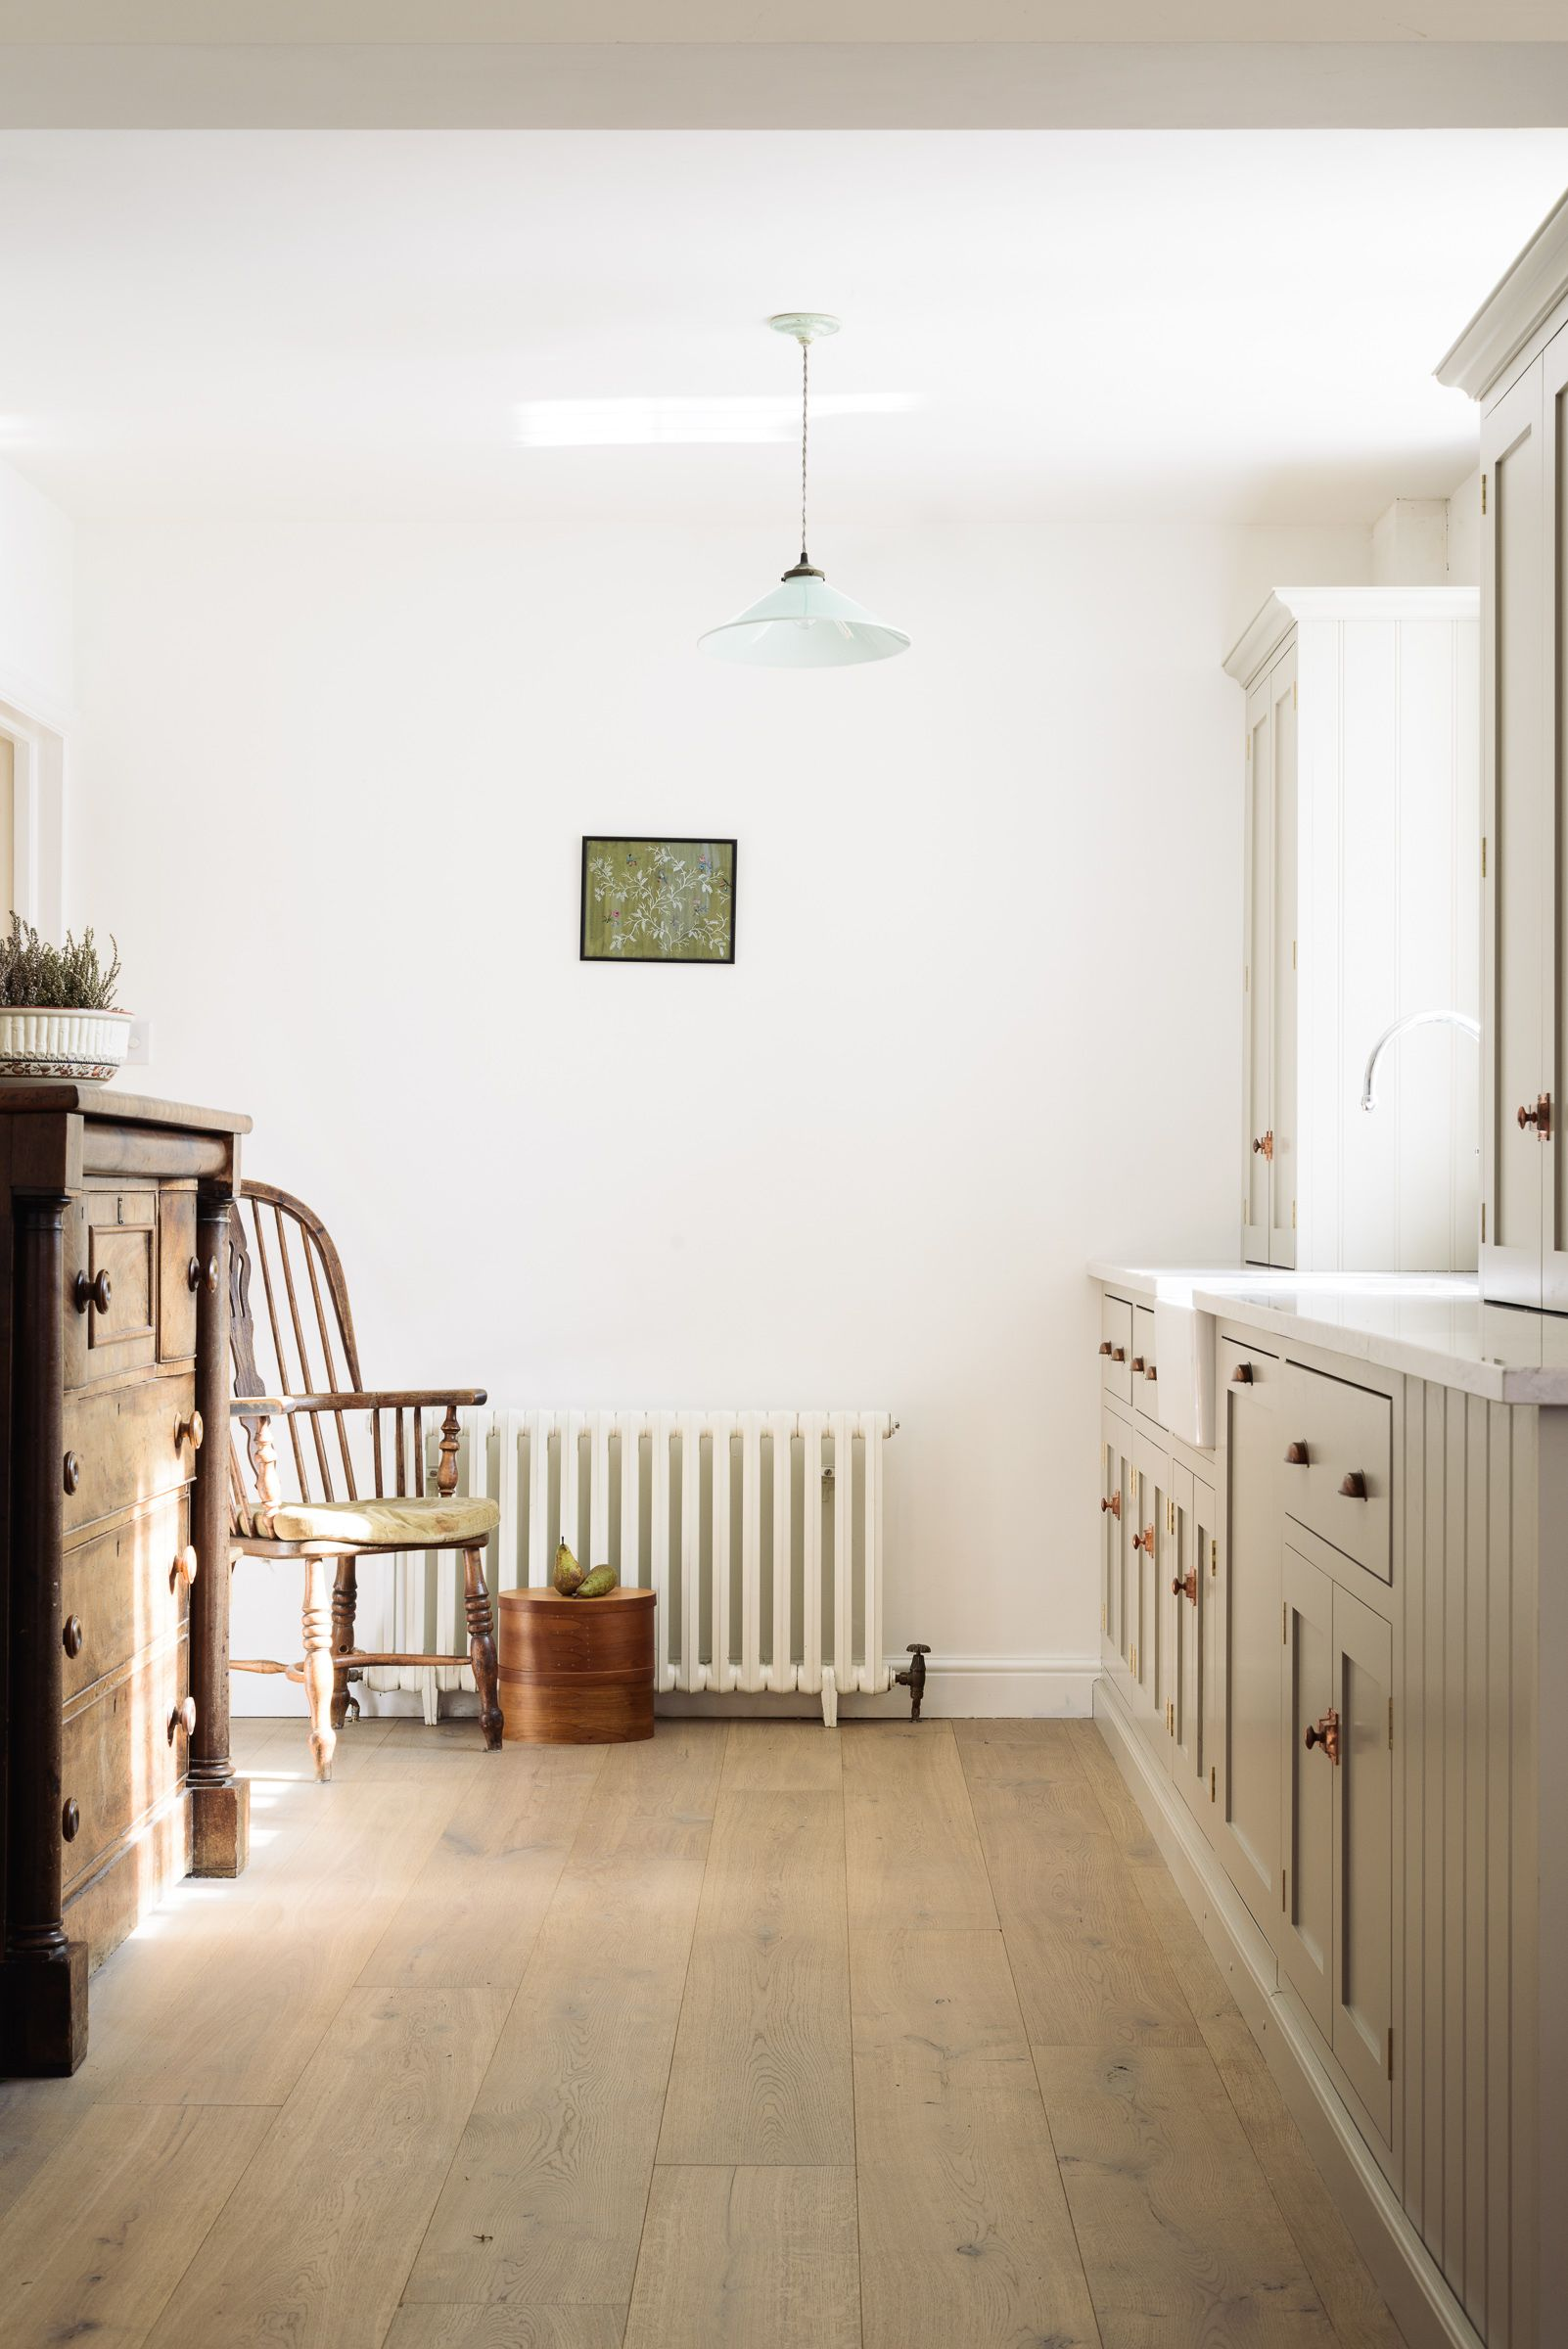 Our new surrey kitchen features simple white walls and mushroom